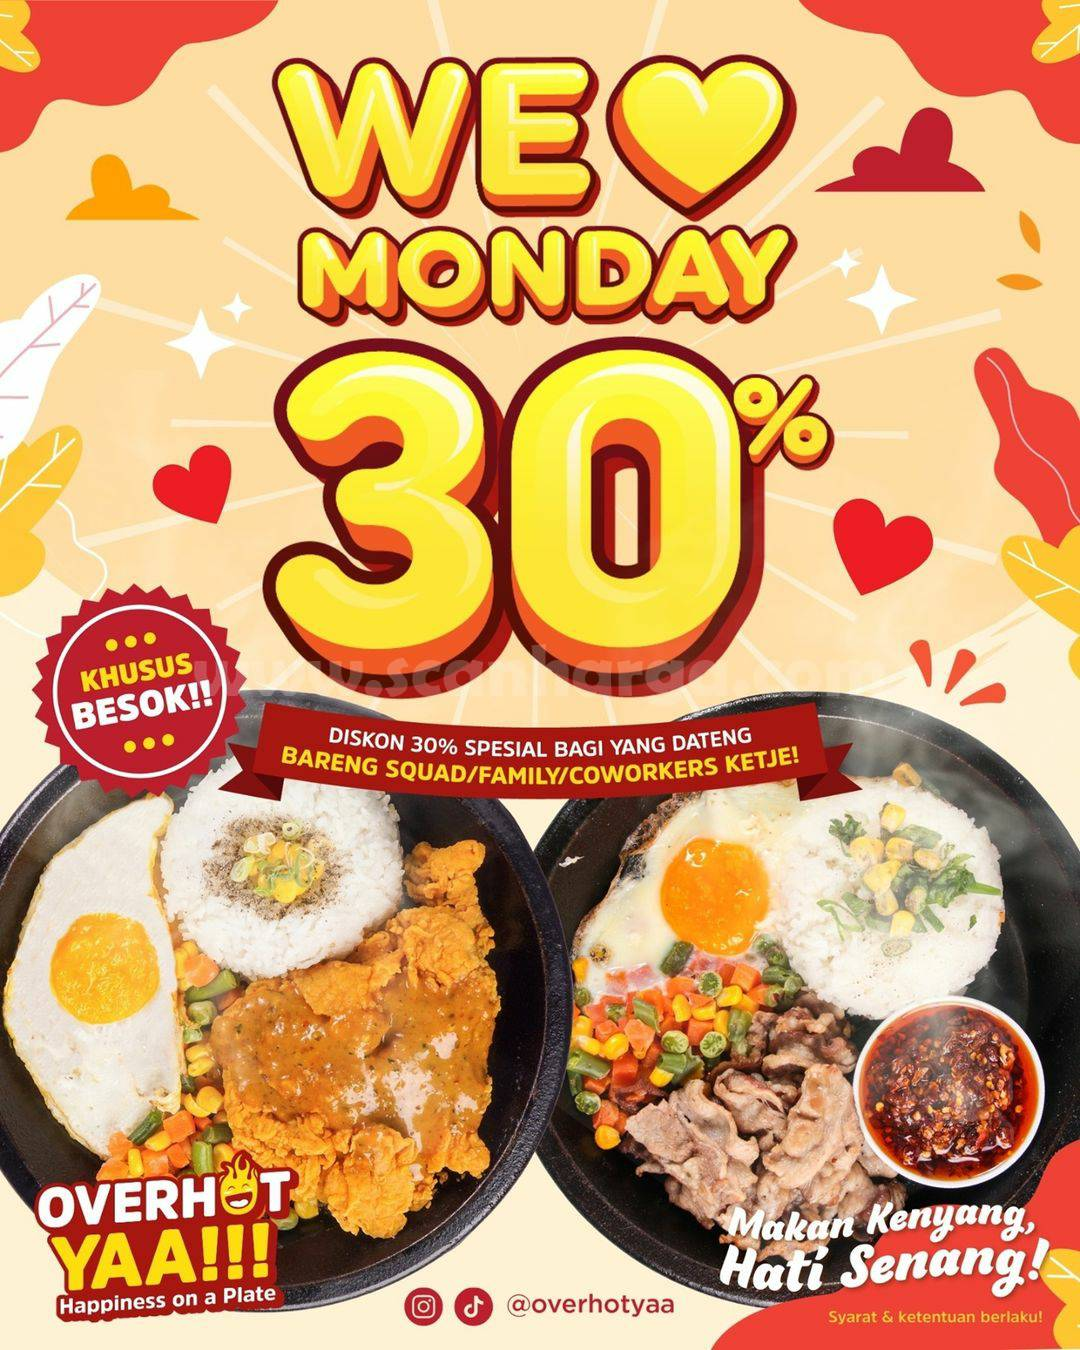 Promo Overhot Yaa Diskon 30% We Love Monday 14 Desember 2020